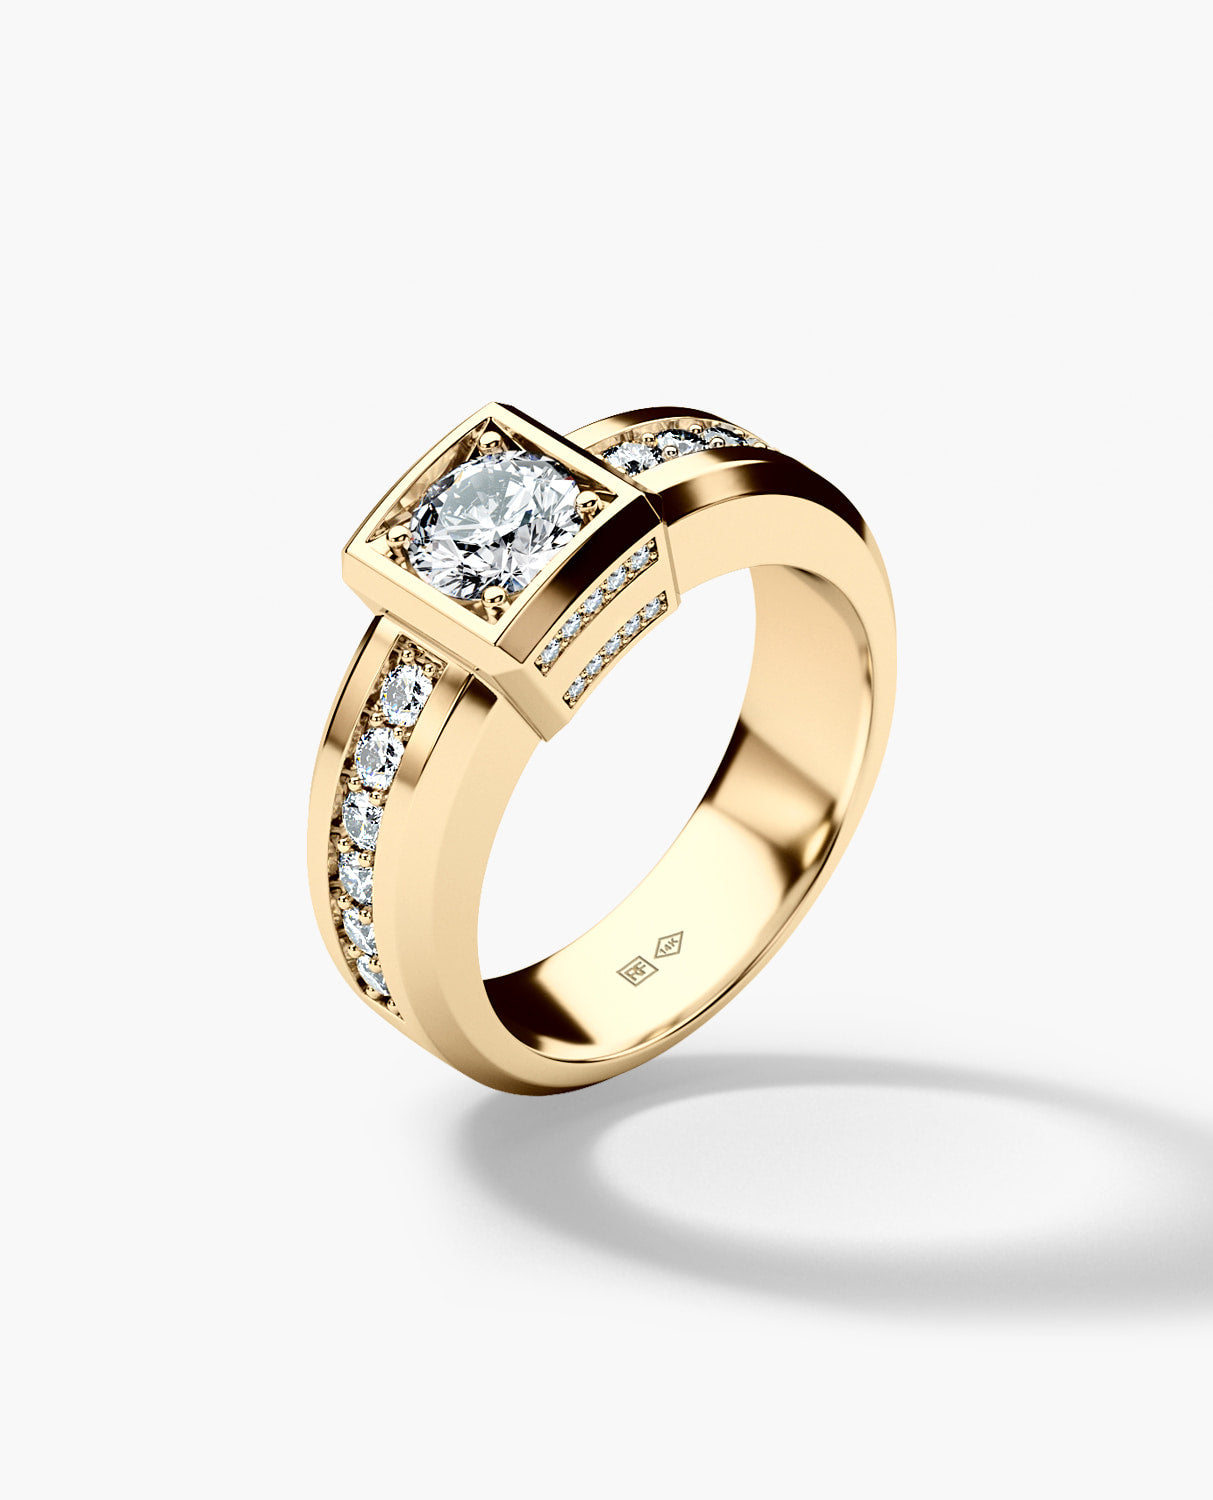 VULTURE Comfort Fit Mens Gold Wedding Ring with 1.65ct Diamonds